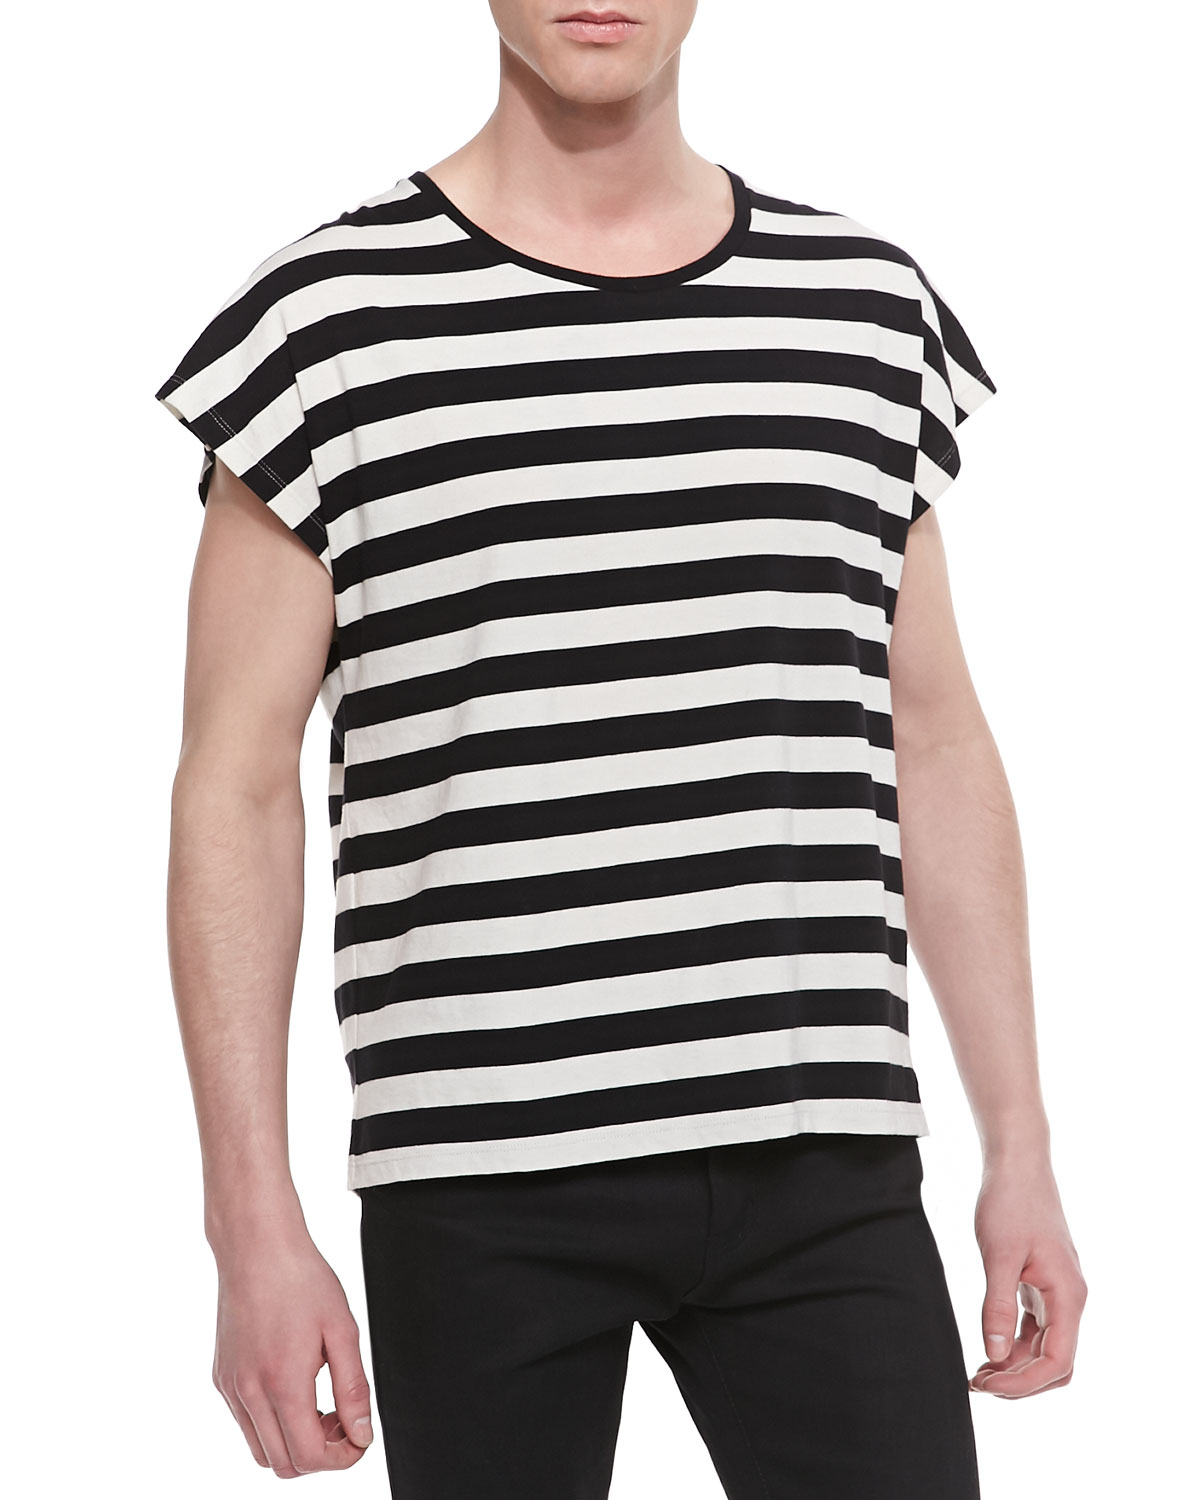 Striped Tee in Black,Stripes,White Saint Laurent